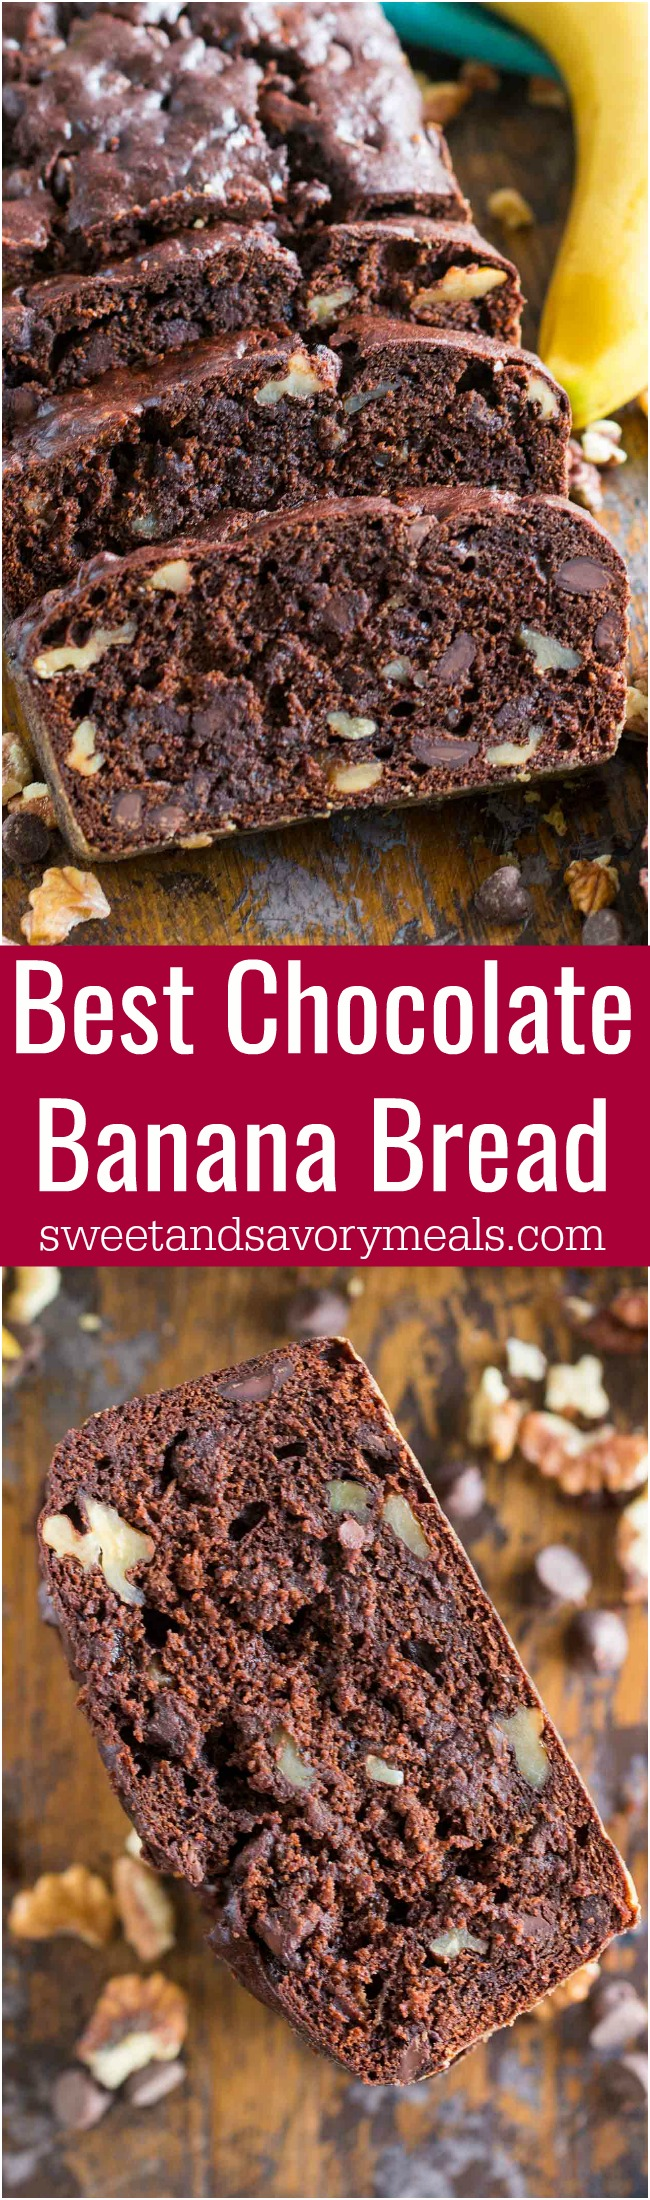 Picture of the best chocolate banana bread.